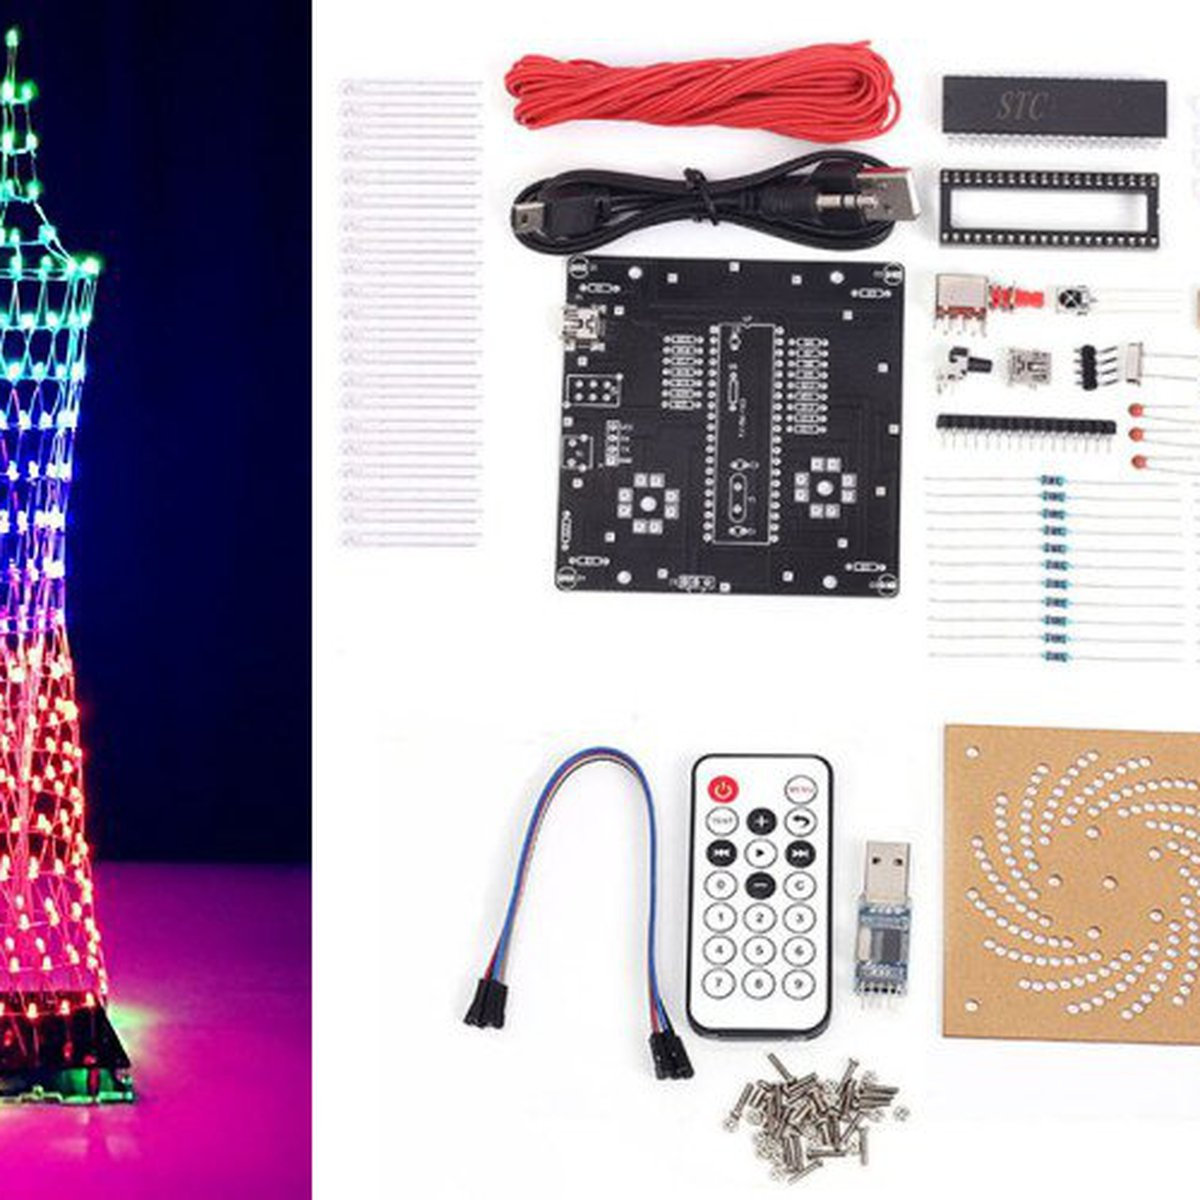 Diy Kit Colorful Led Tower Display12320 From Icstation On Tindie Pcb Layout Small Christmas Flasher Circuit With Sound